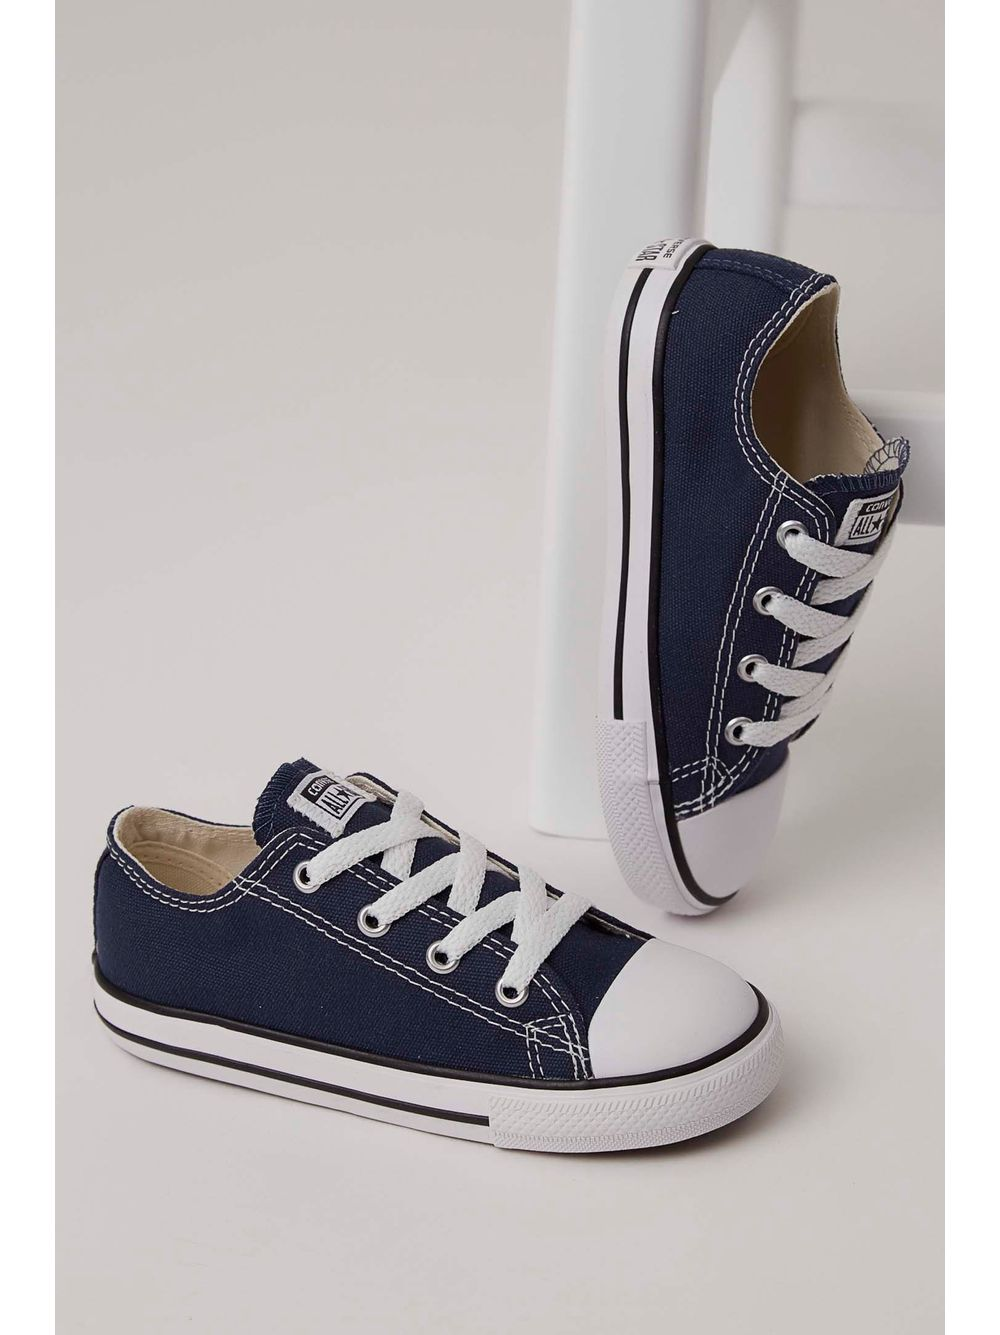 b493fed9996 Tênis Casual All Star Converse Infantil Marinho - pittol